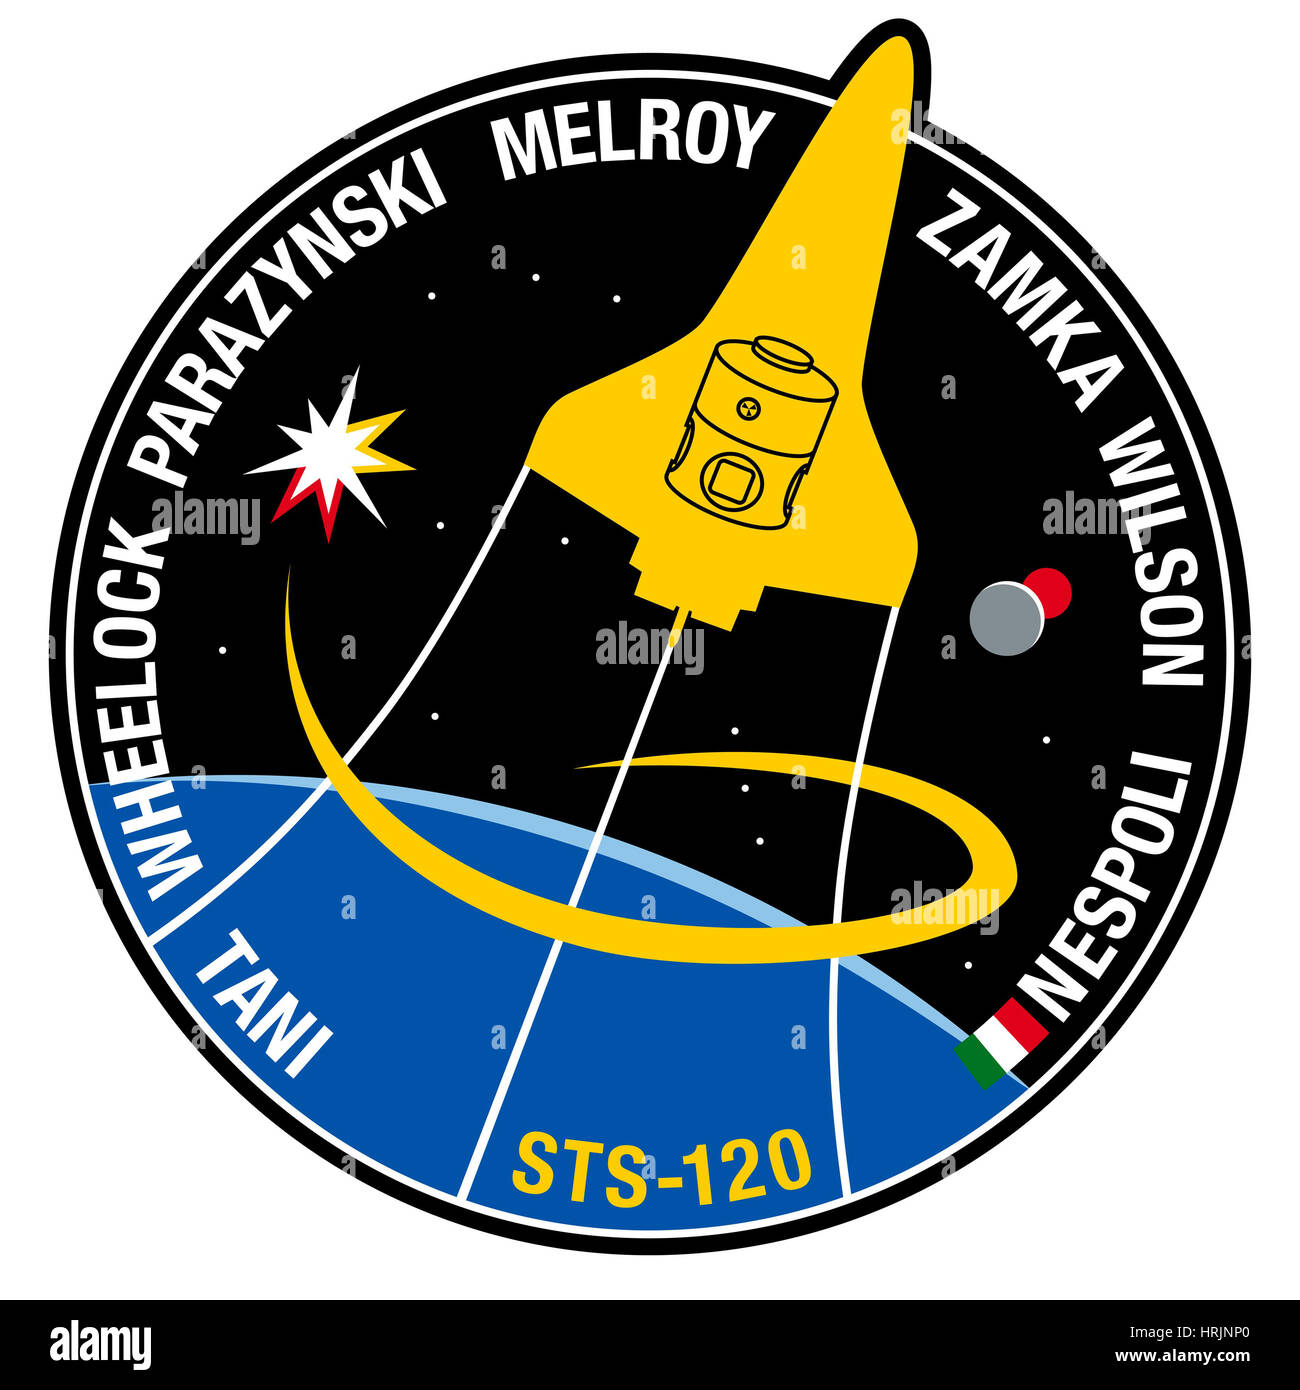 STS-120, Mission Patch, 2007 - Stock Image